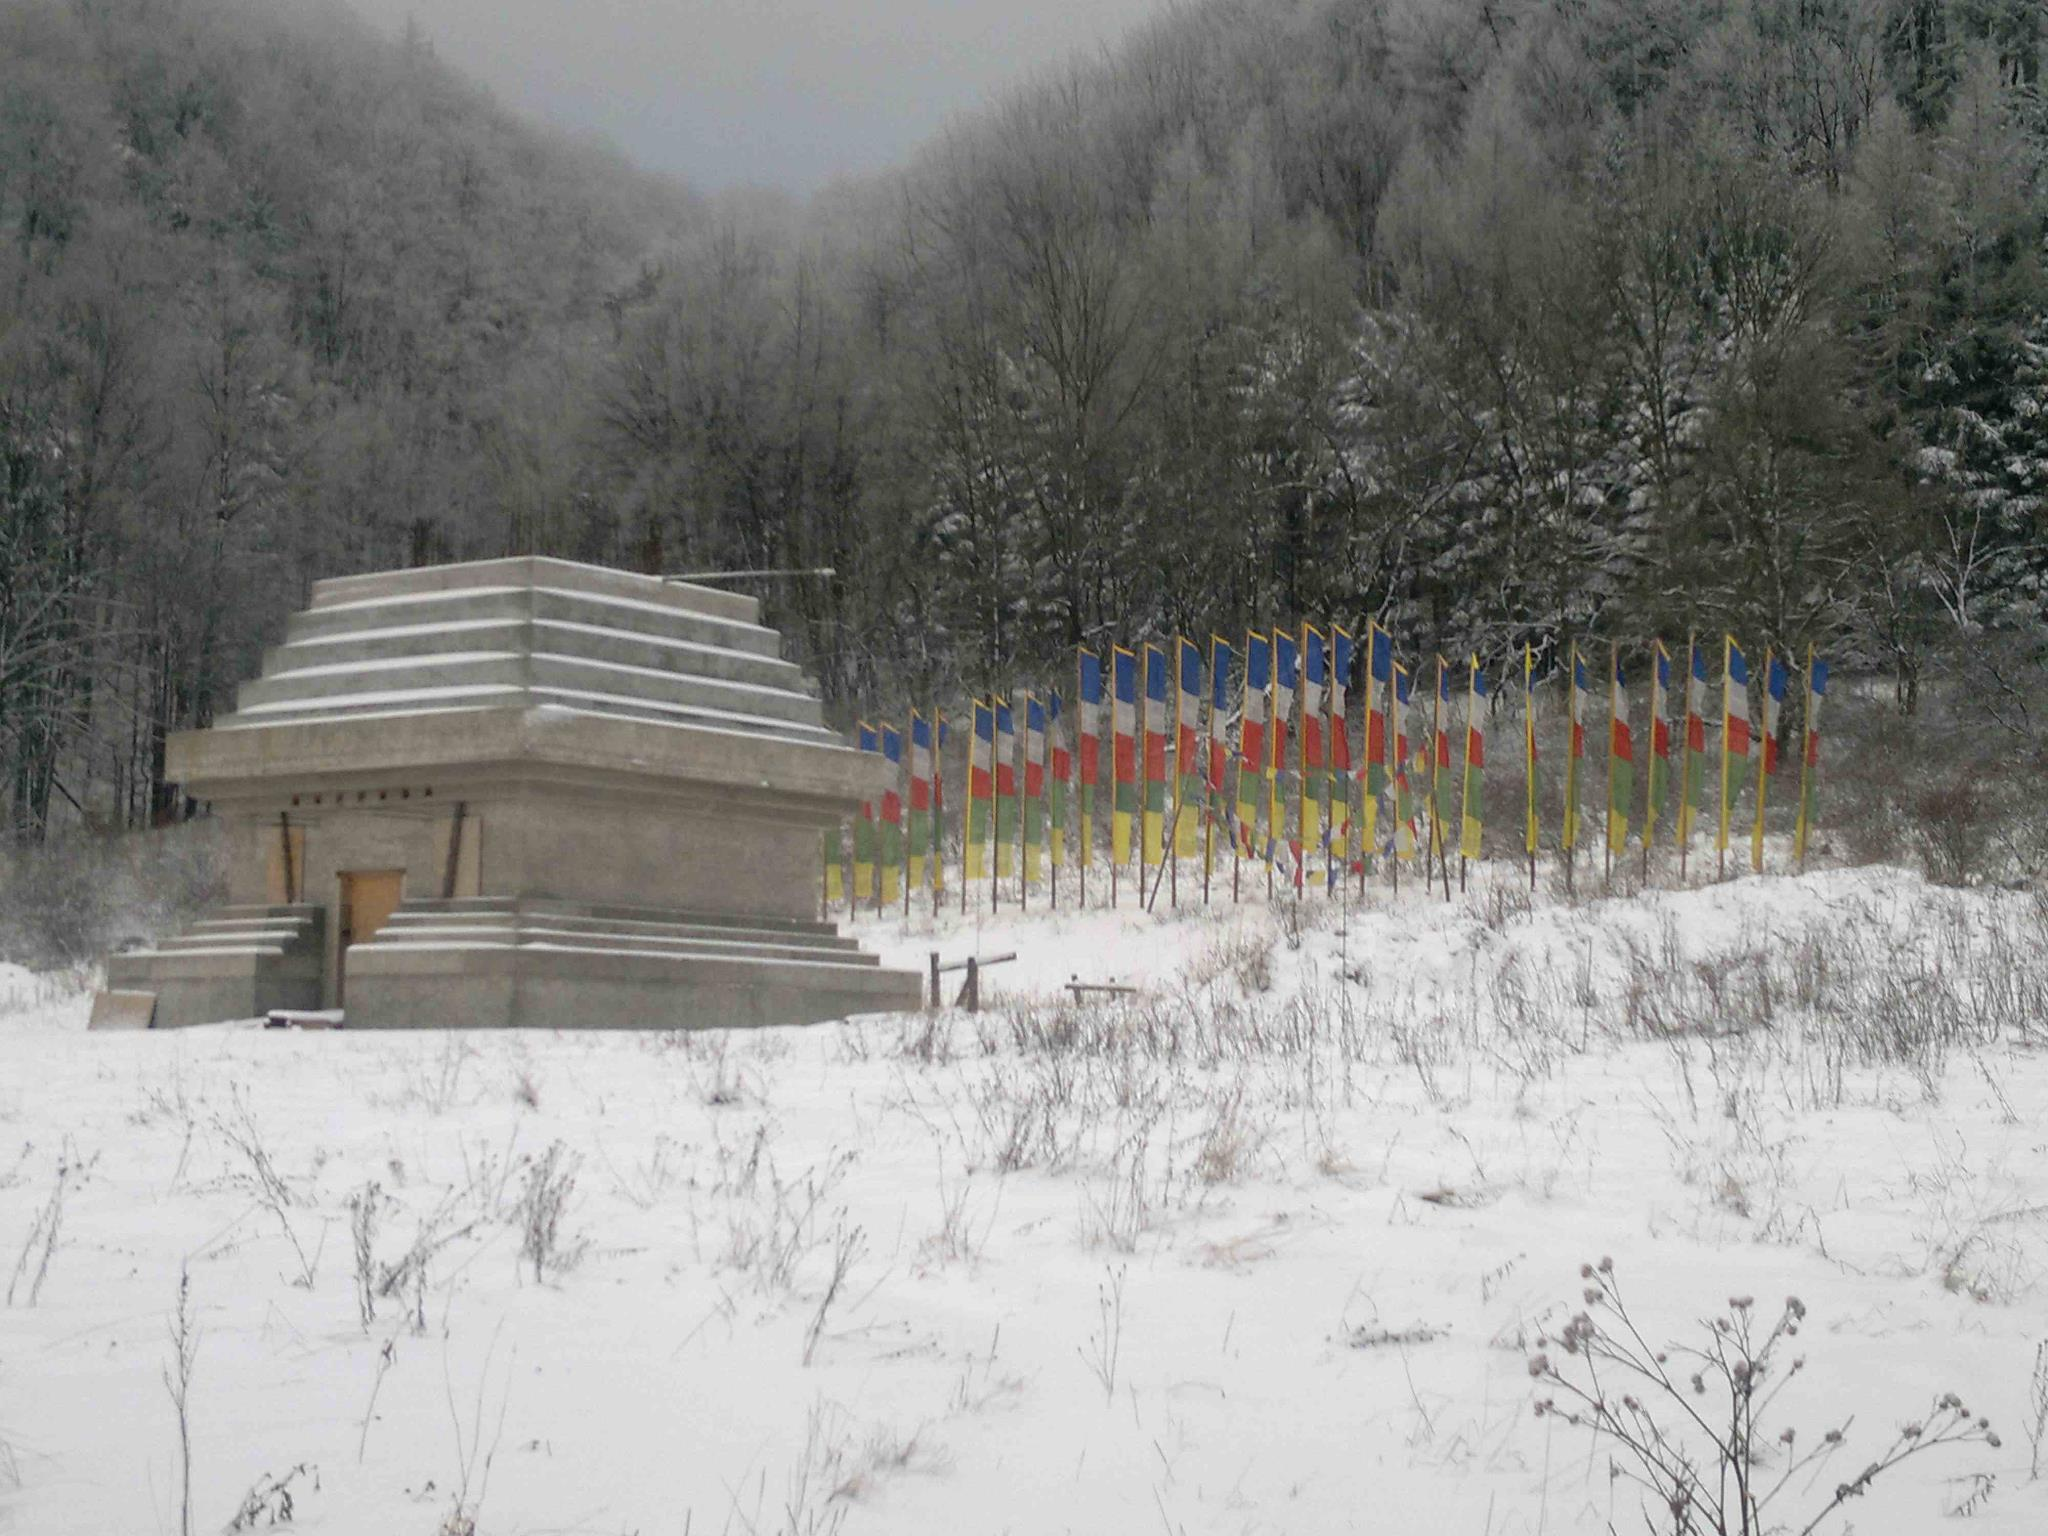 Stupa in Drophan Ling 1.1.2012